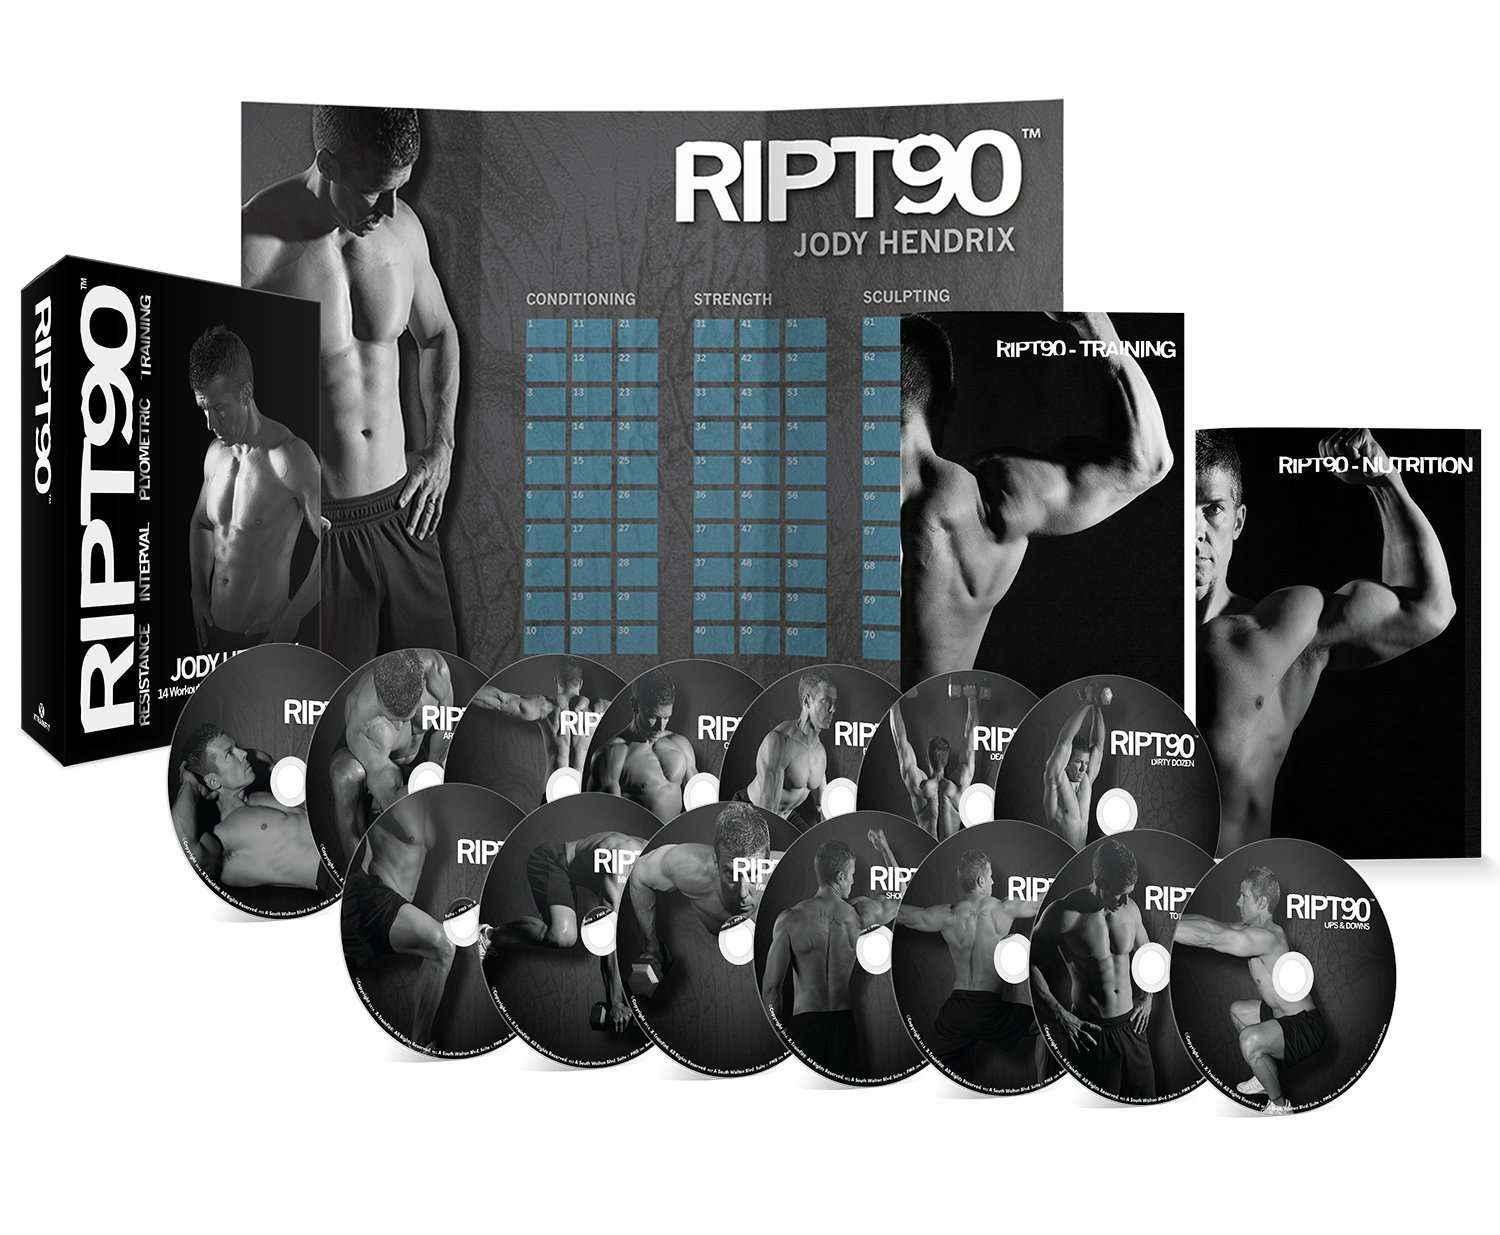 8 Best Workout Dvds For 2019 Circuit Training To Gain Muscle And Lose Fat Ripped Tips Men X Trainfit Ript90